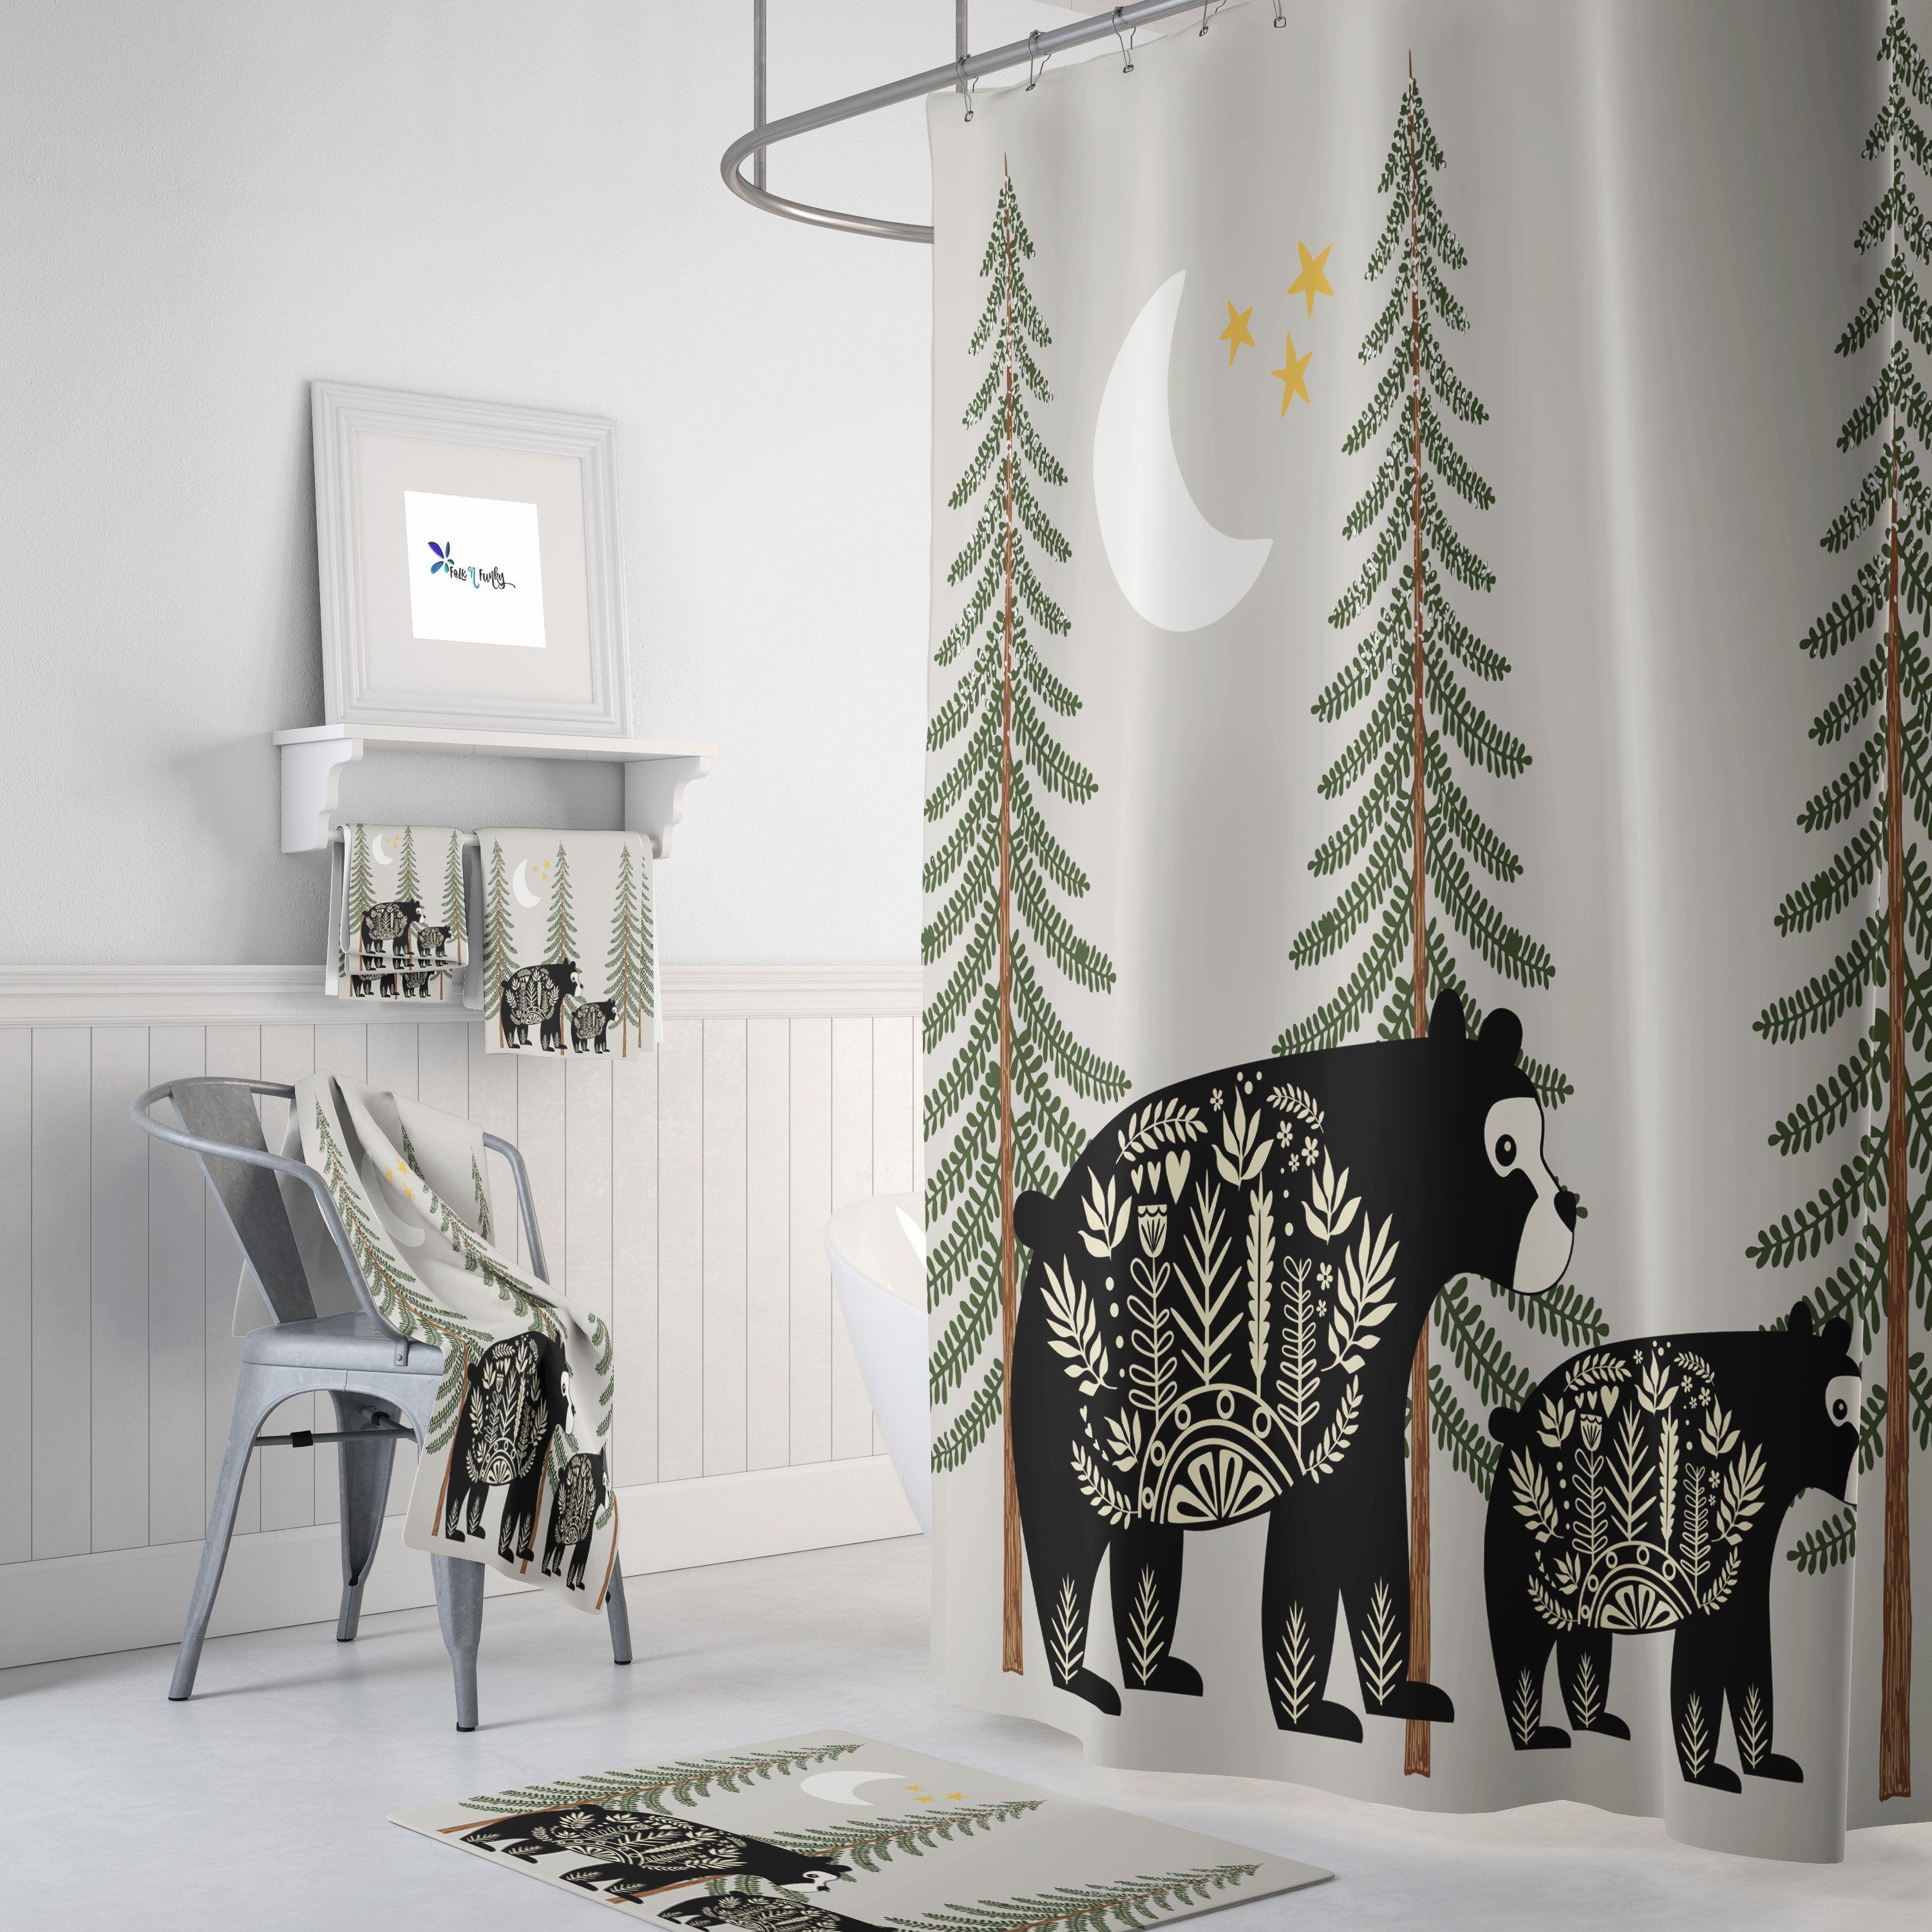 Nordic Bear Shower Curtain Woodland Rustic Country Etsy Bathroom Decor Unique Shower Curtain Country Bathroom Decor